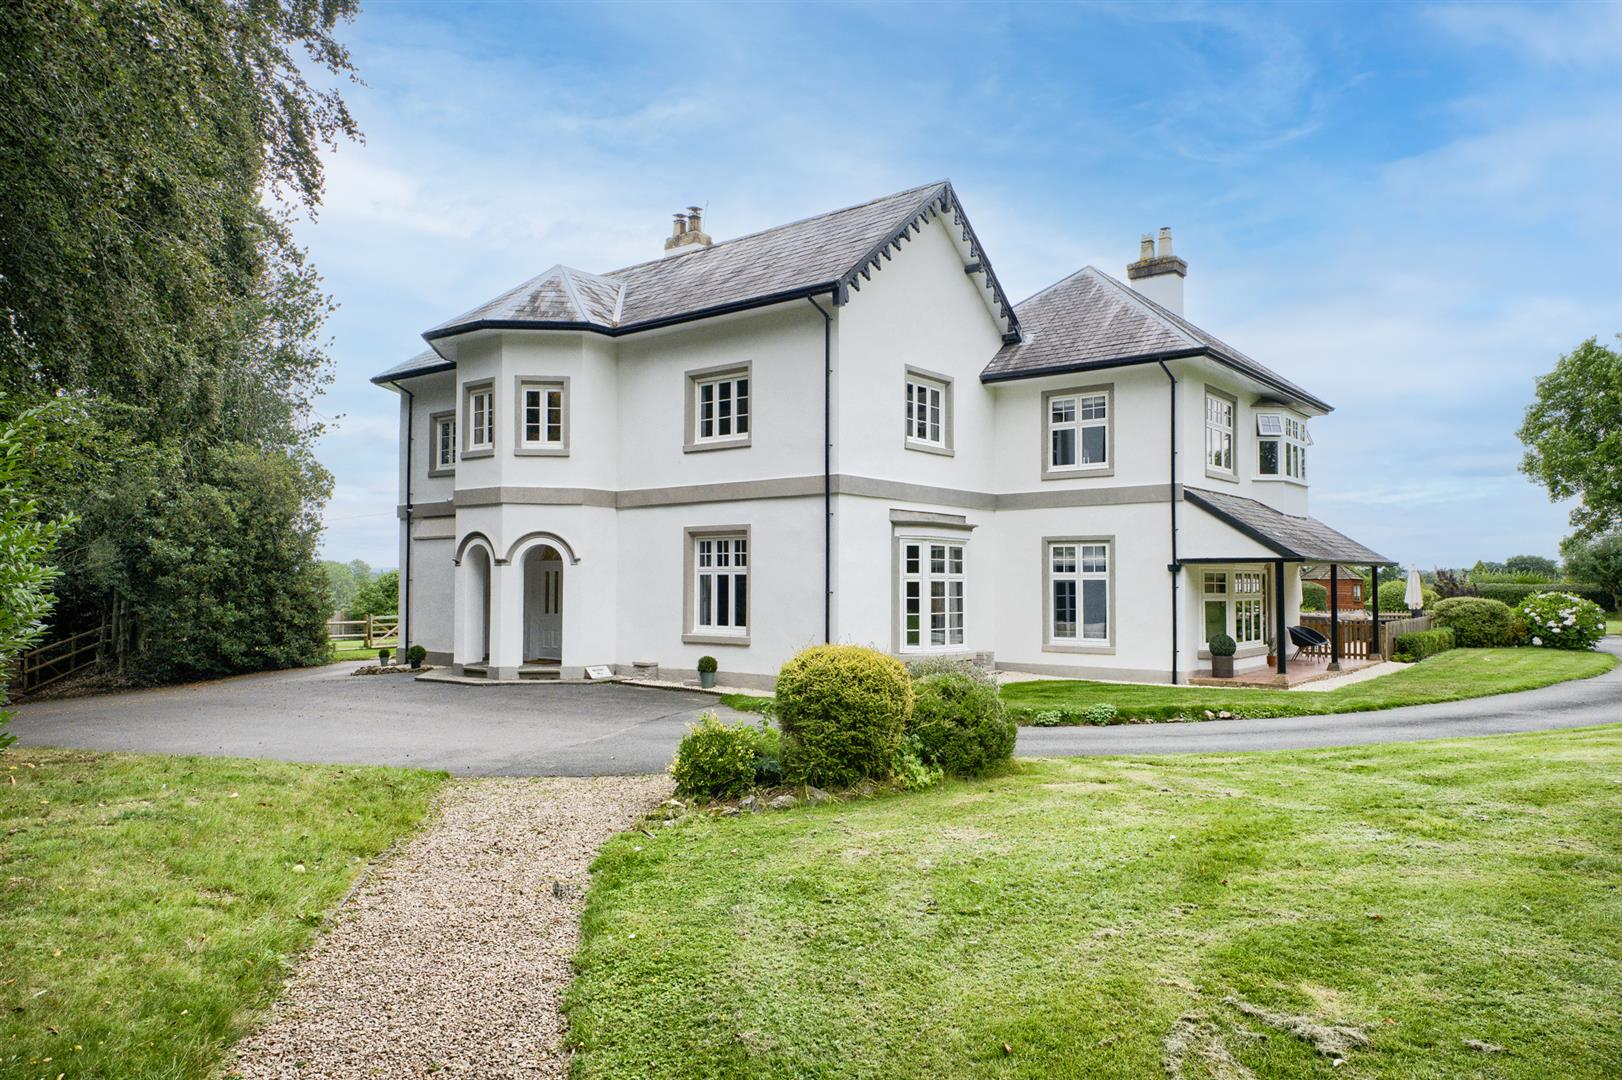 Stourport-On-Severn, Worcestershire, 7 Bedrooms